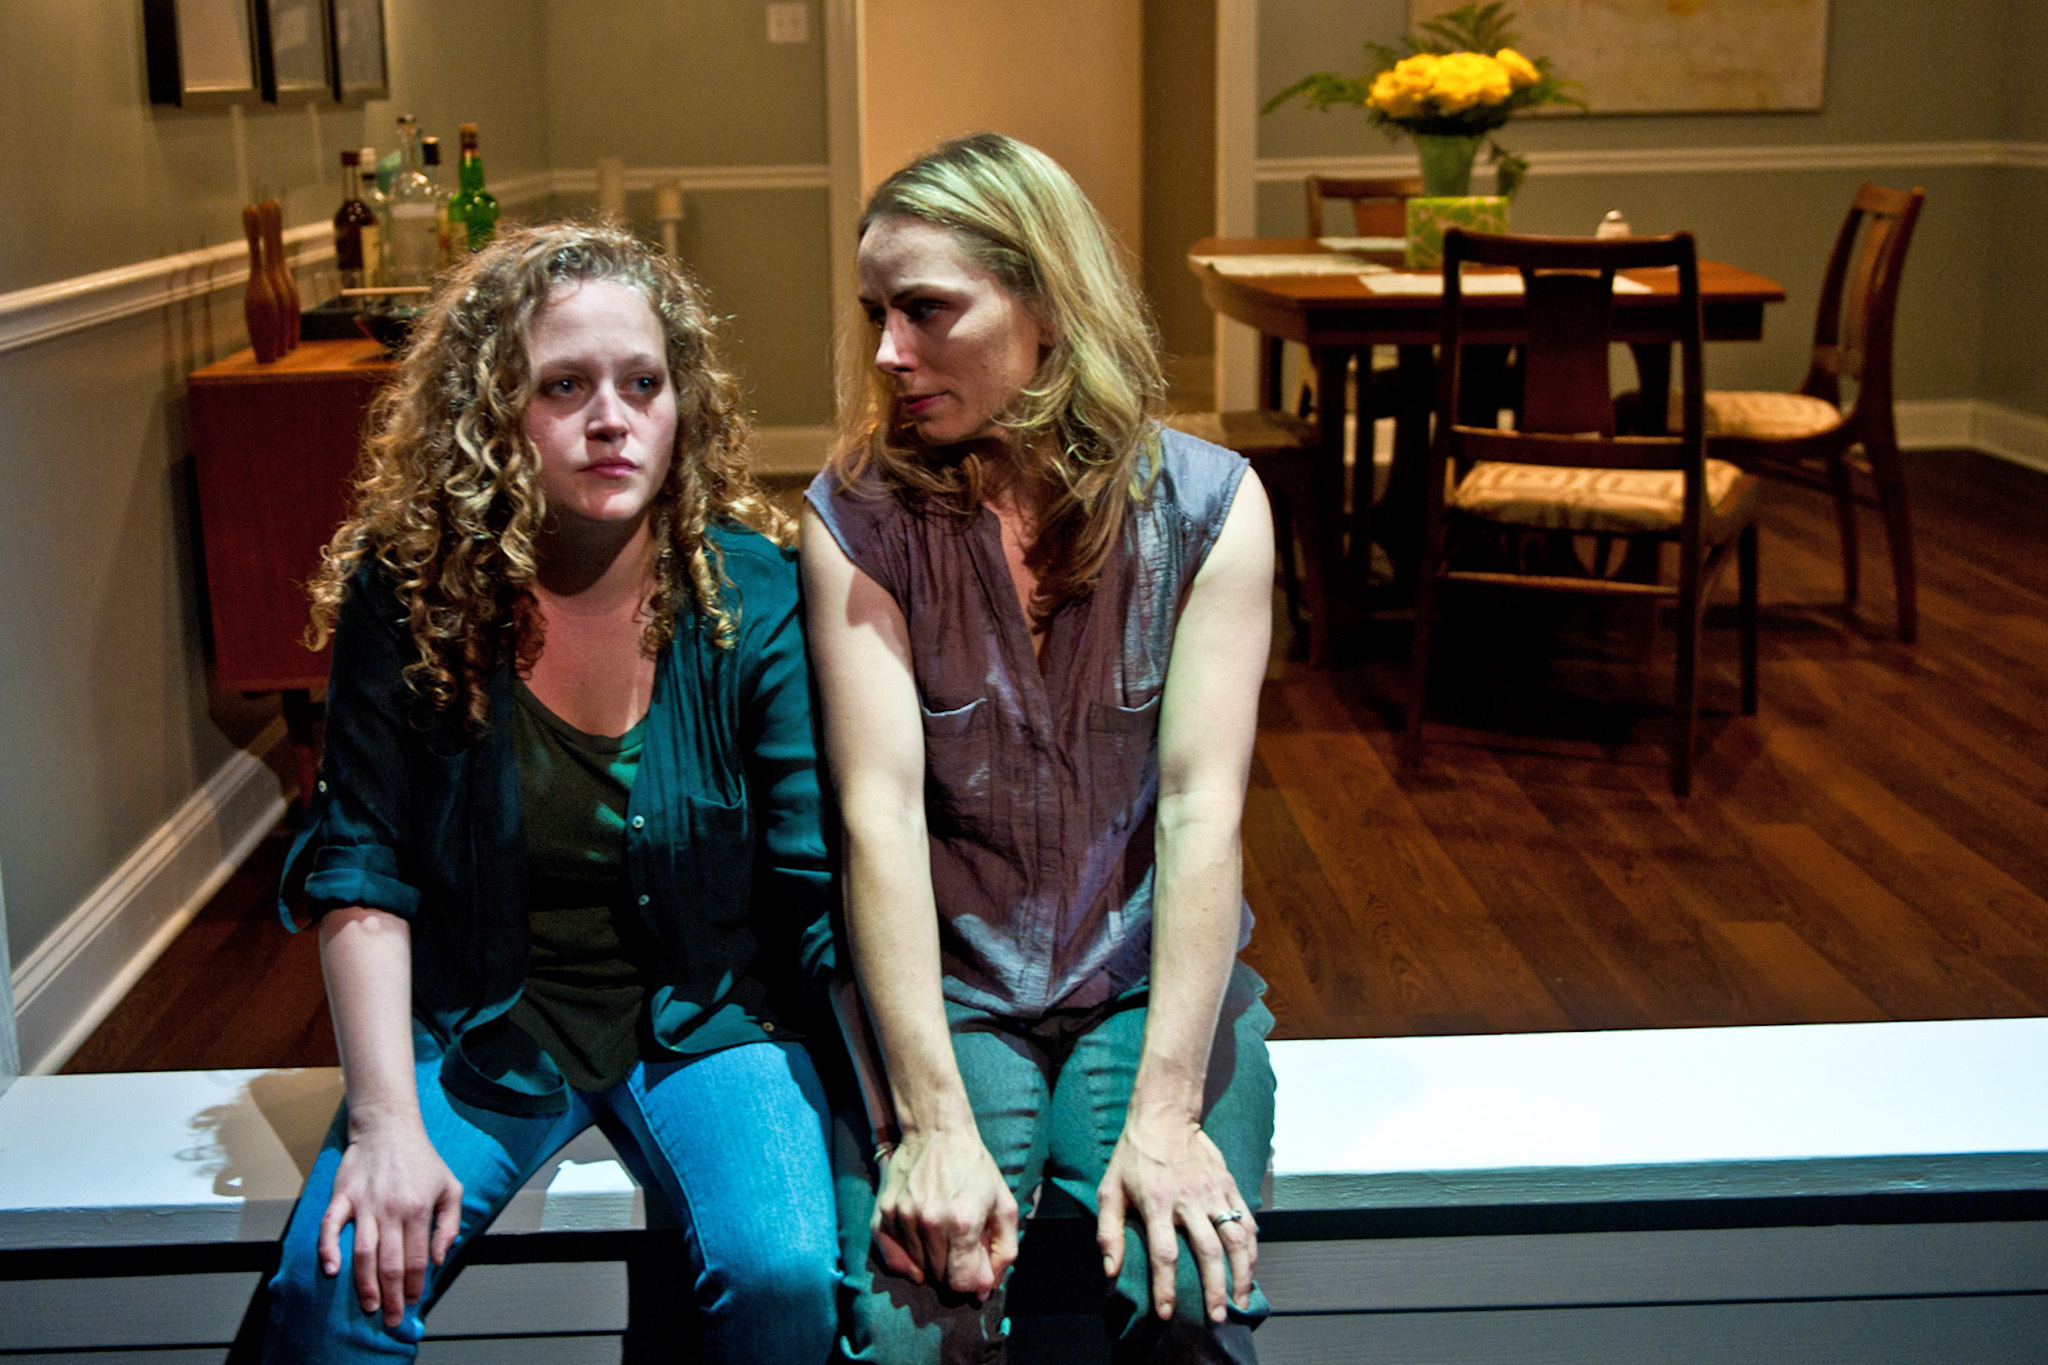 Caroline Neff and Brenda Barrie in The Downpour at Route 66 Theatre Company